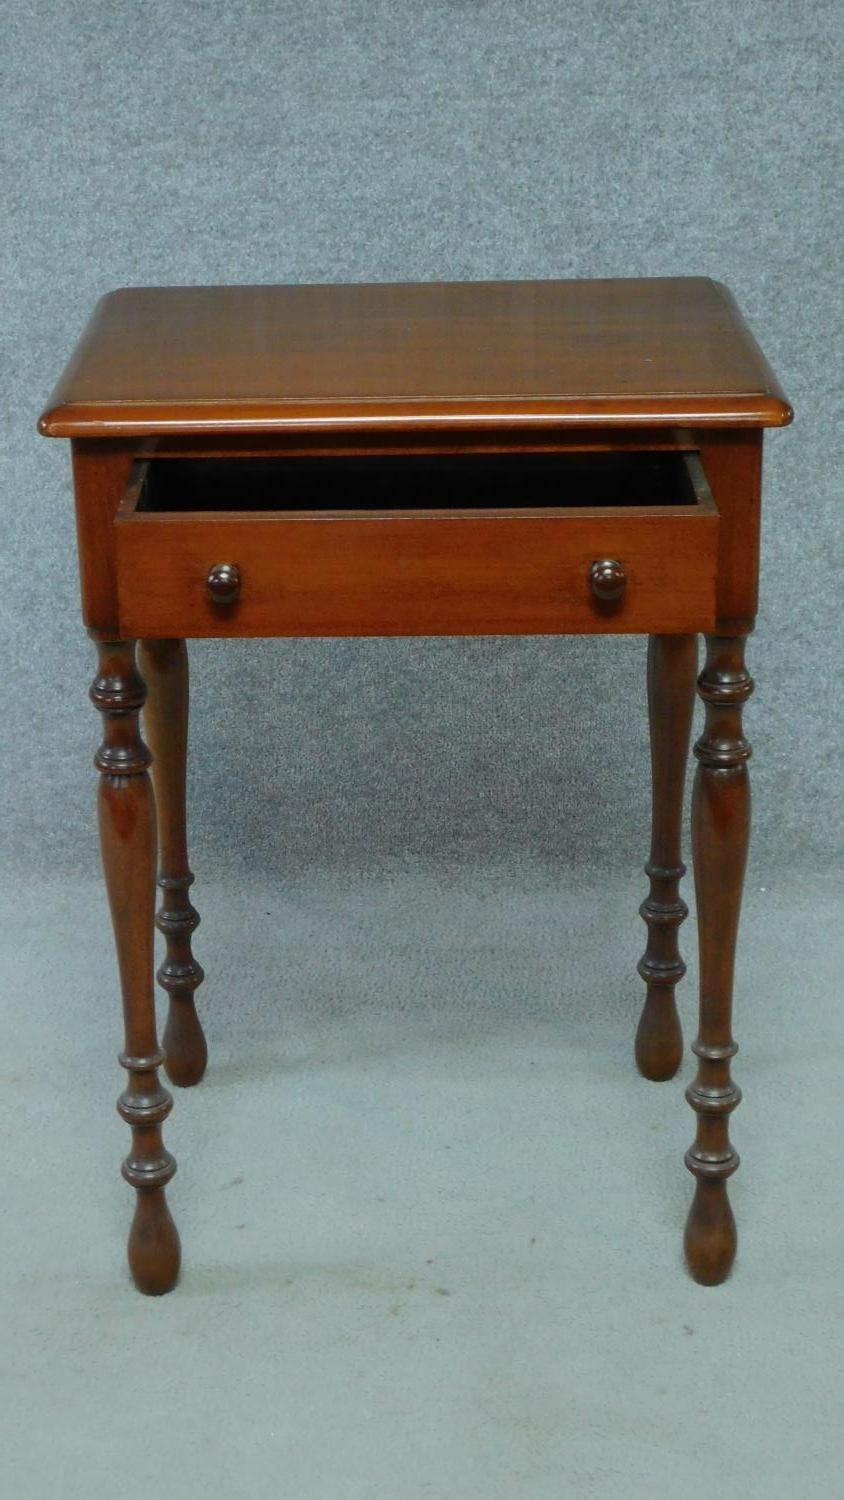 A late 19th century mahogany bedside table with frieze drawer, raised on turned tapering supports. - Image 4 of 5